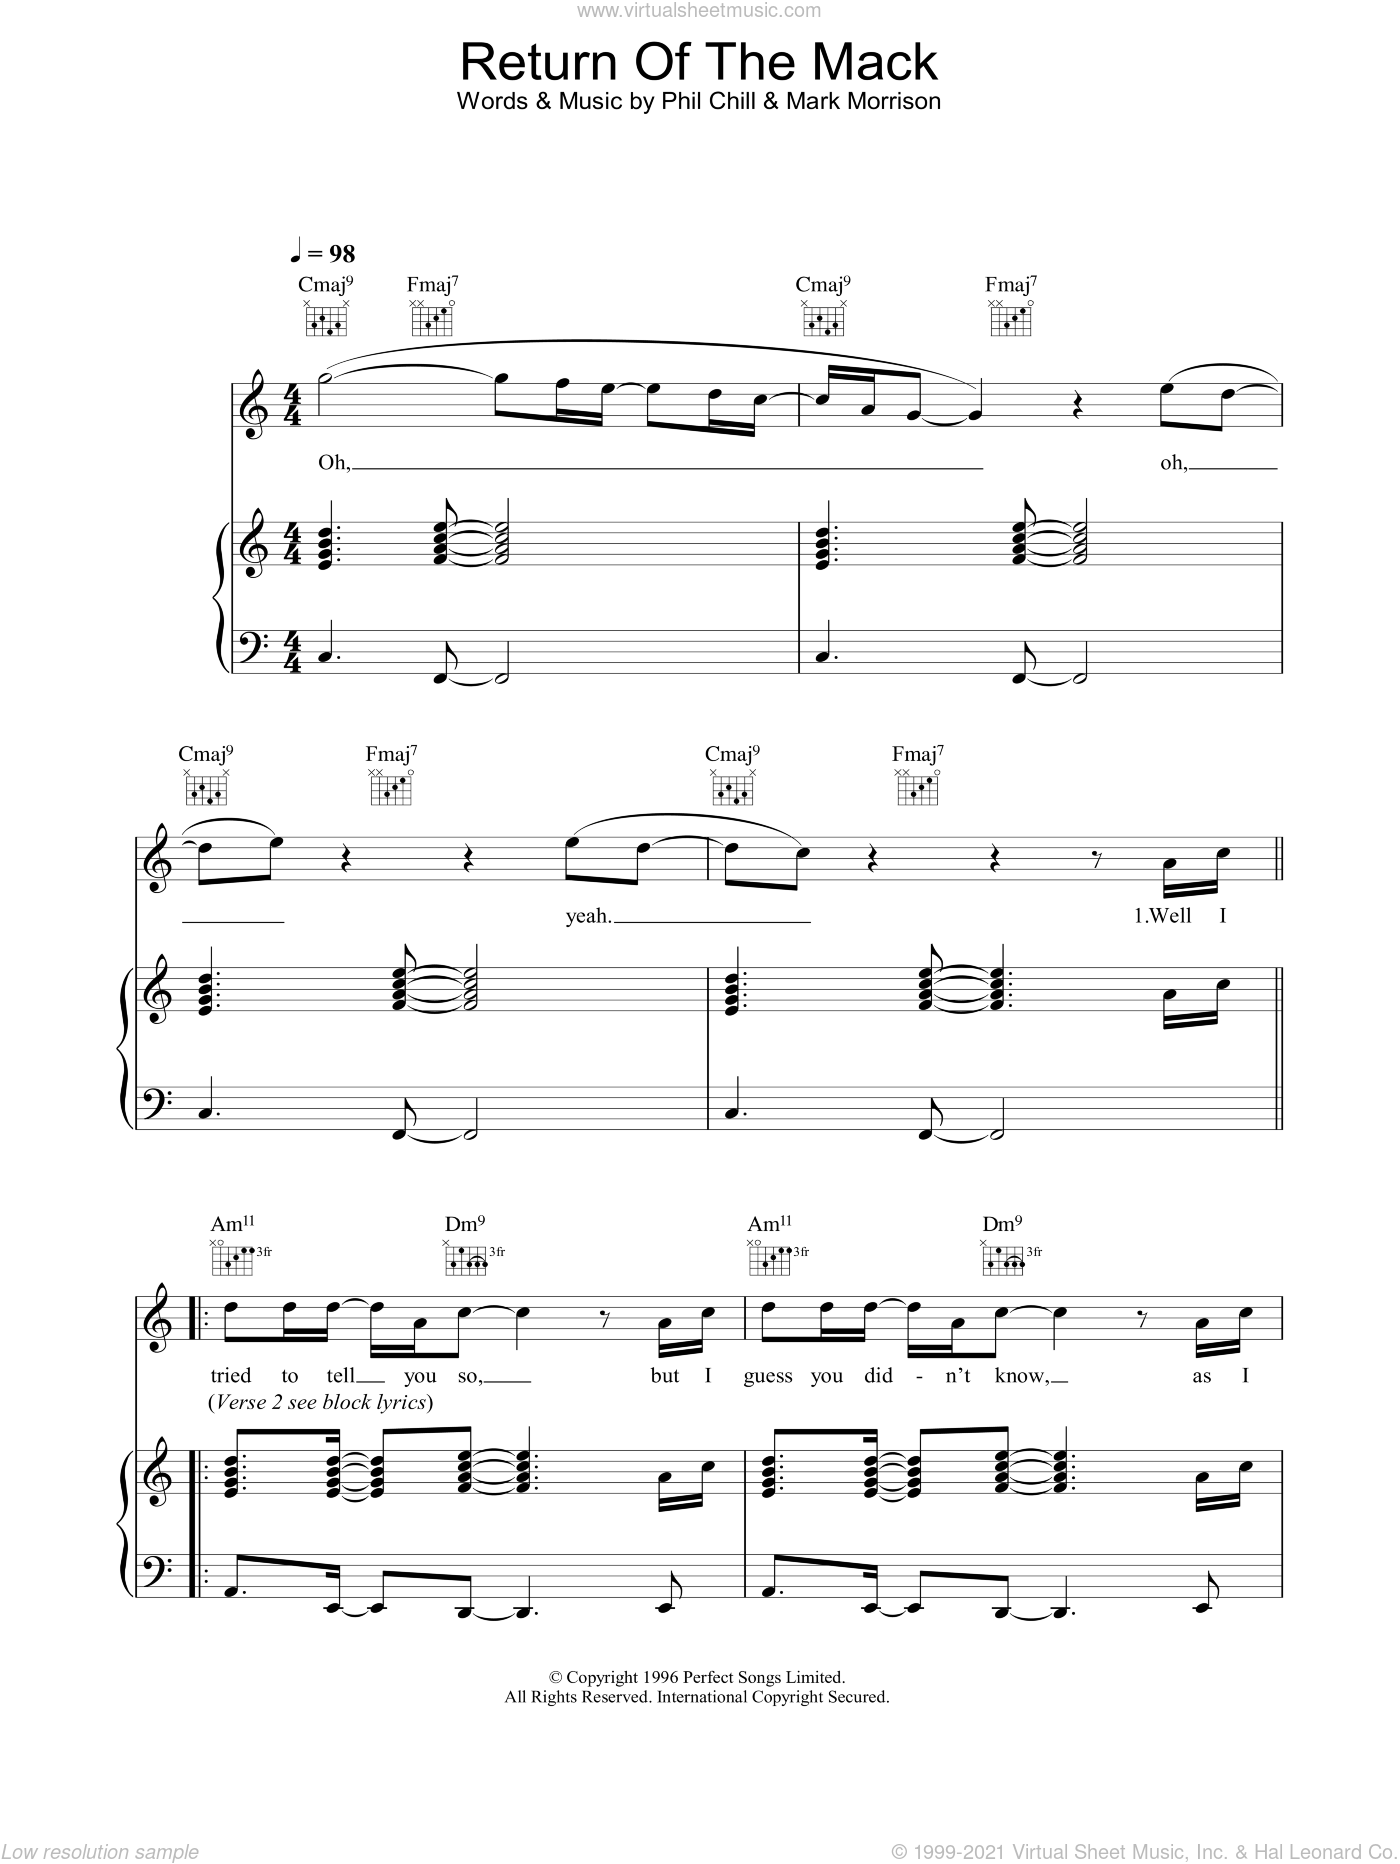 Return Of The Mack sheet music for voice, piano or guitar by Mark Morrison and Phil Chill, intermediate skill level